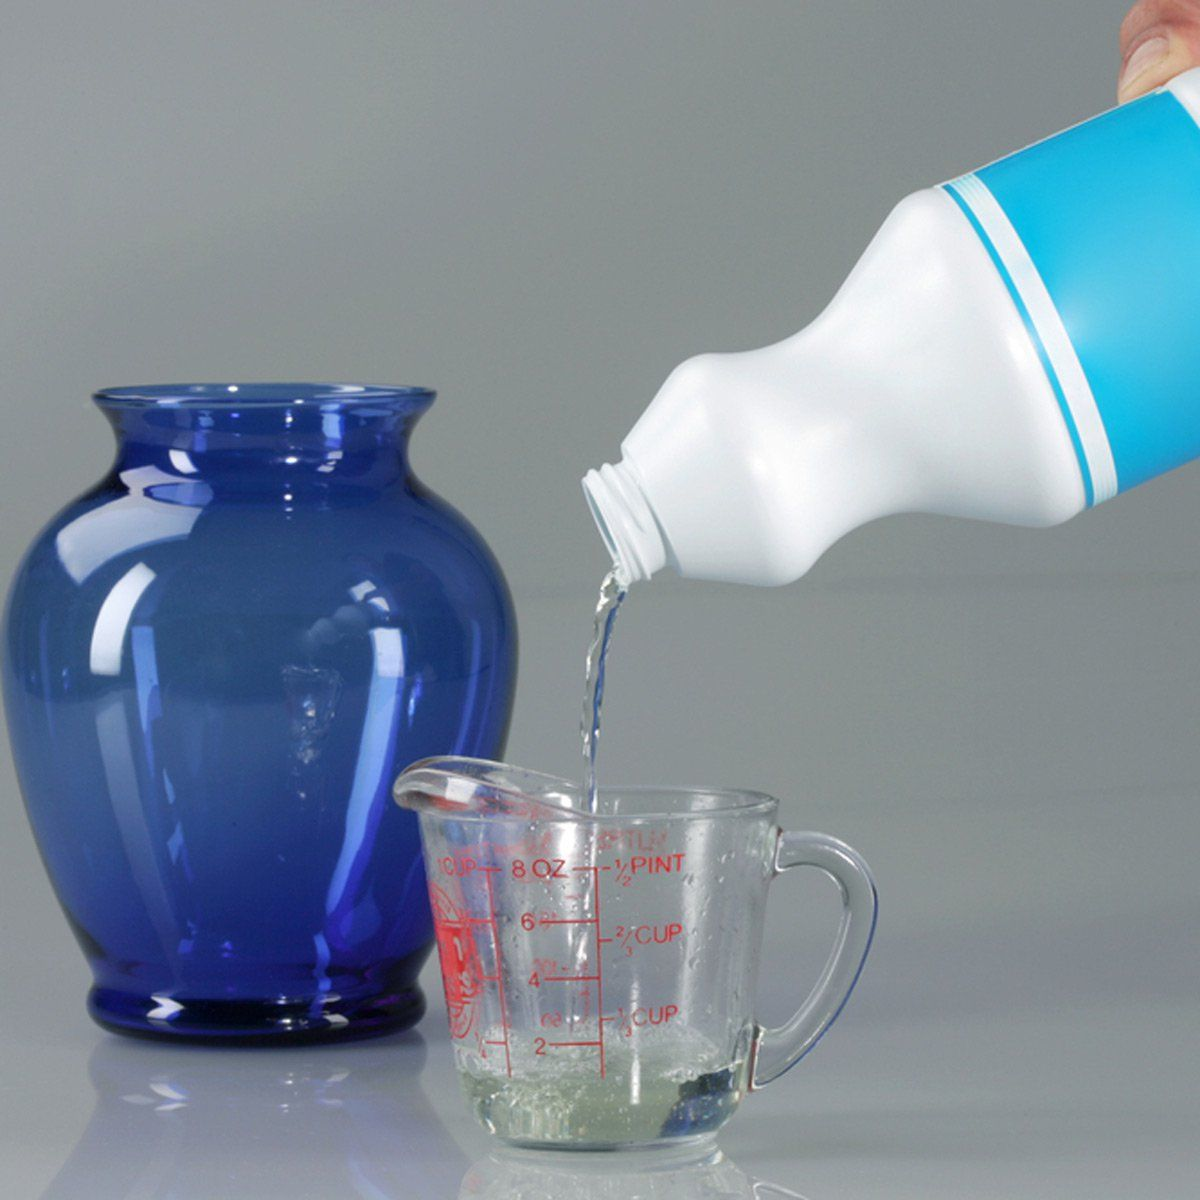 how to dispose of bleach water with a septic system